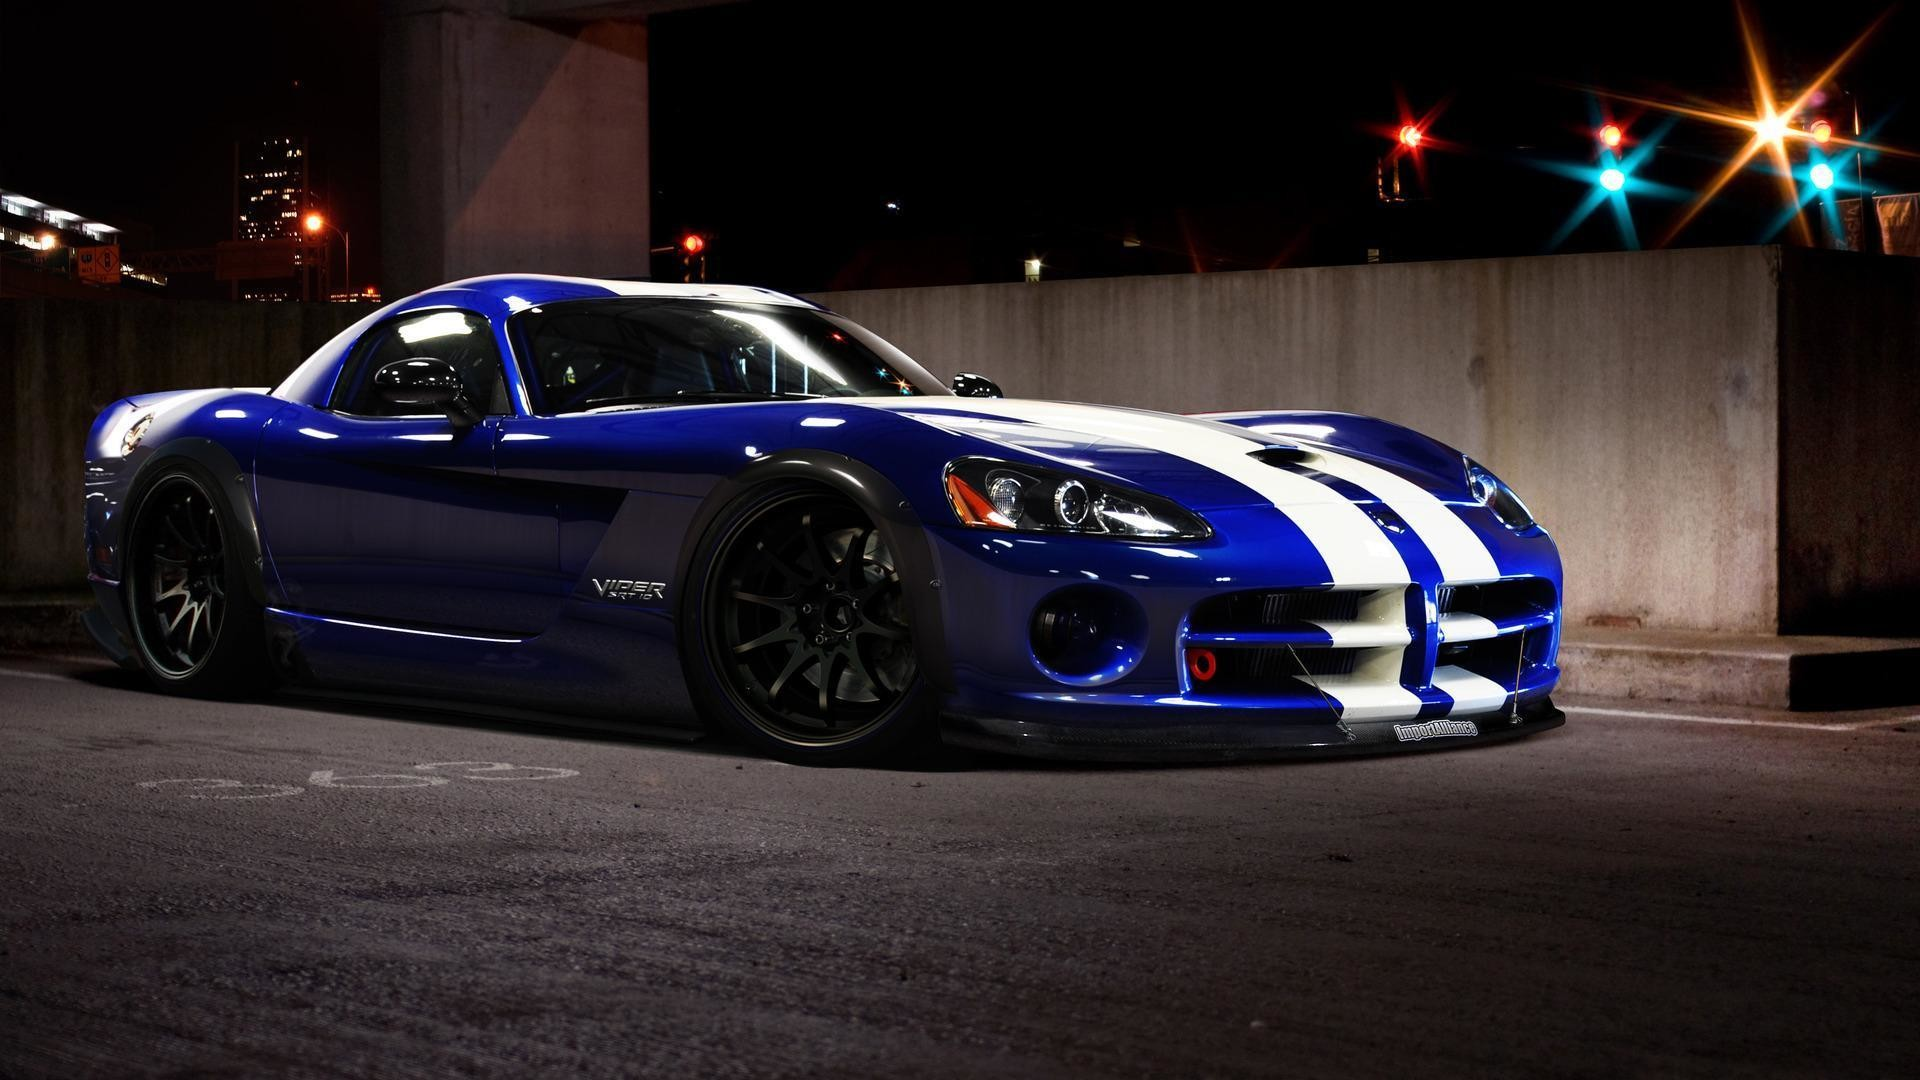 1920x1080 2015 Dodge Viper GTS R Blue Custom Wallpaper #17844 | Car Desktop  .